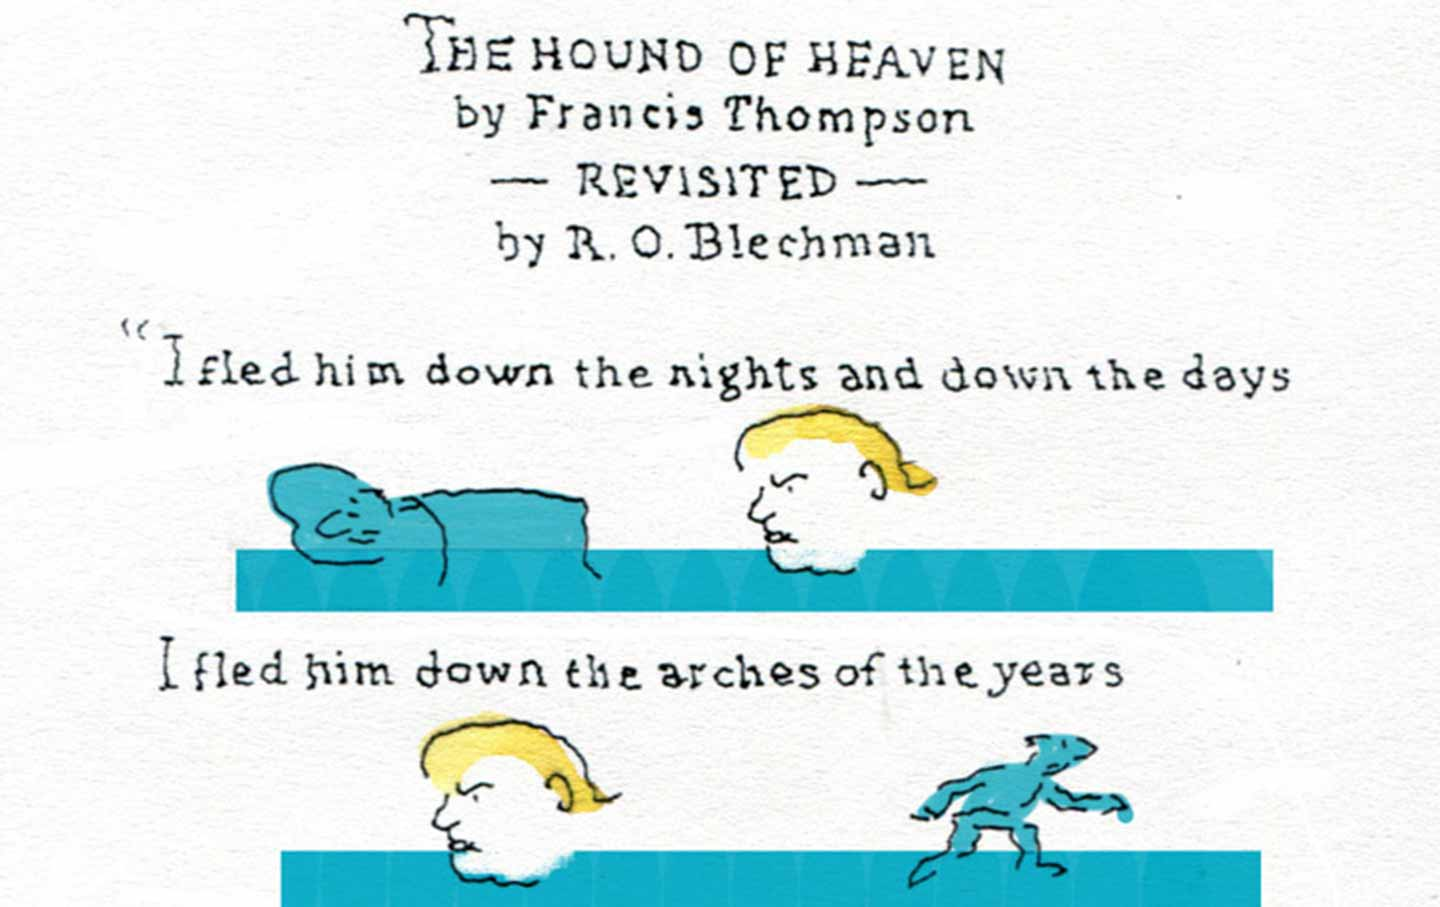 francis thompson the hound of heaven